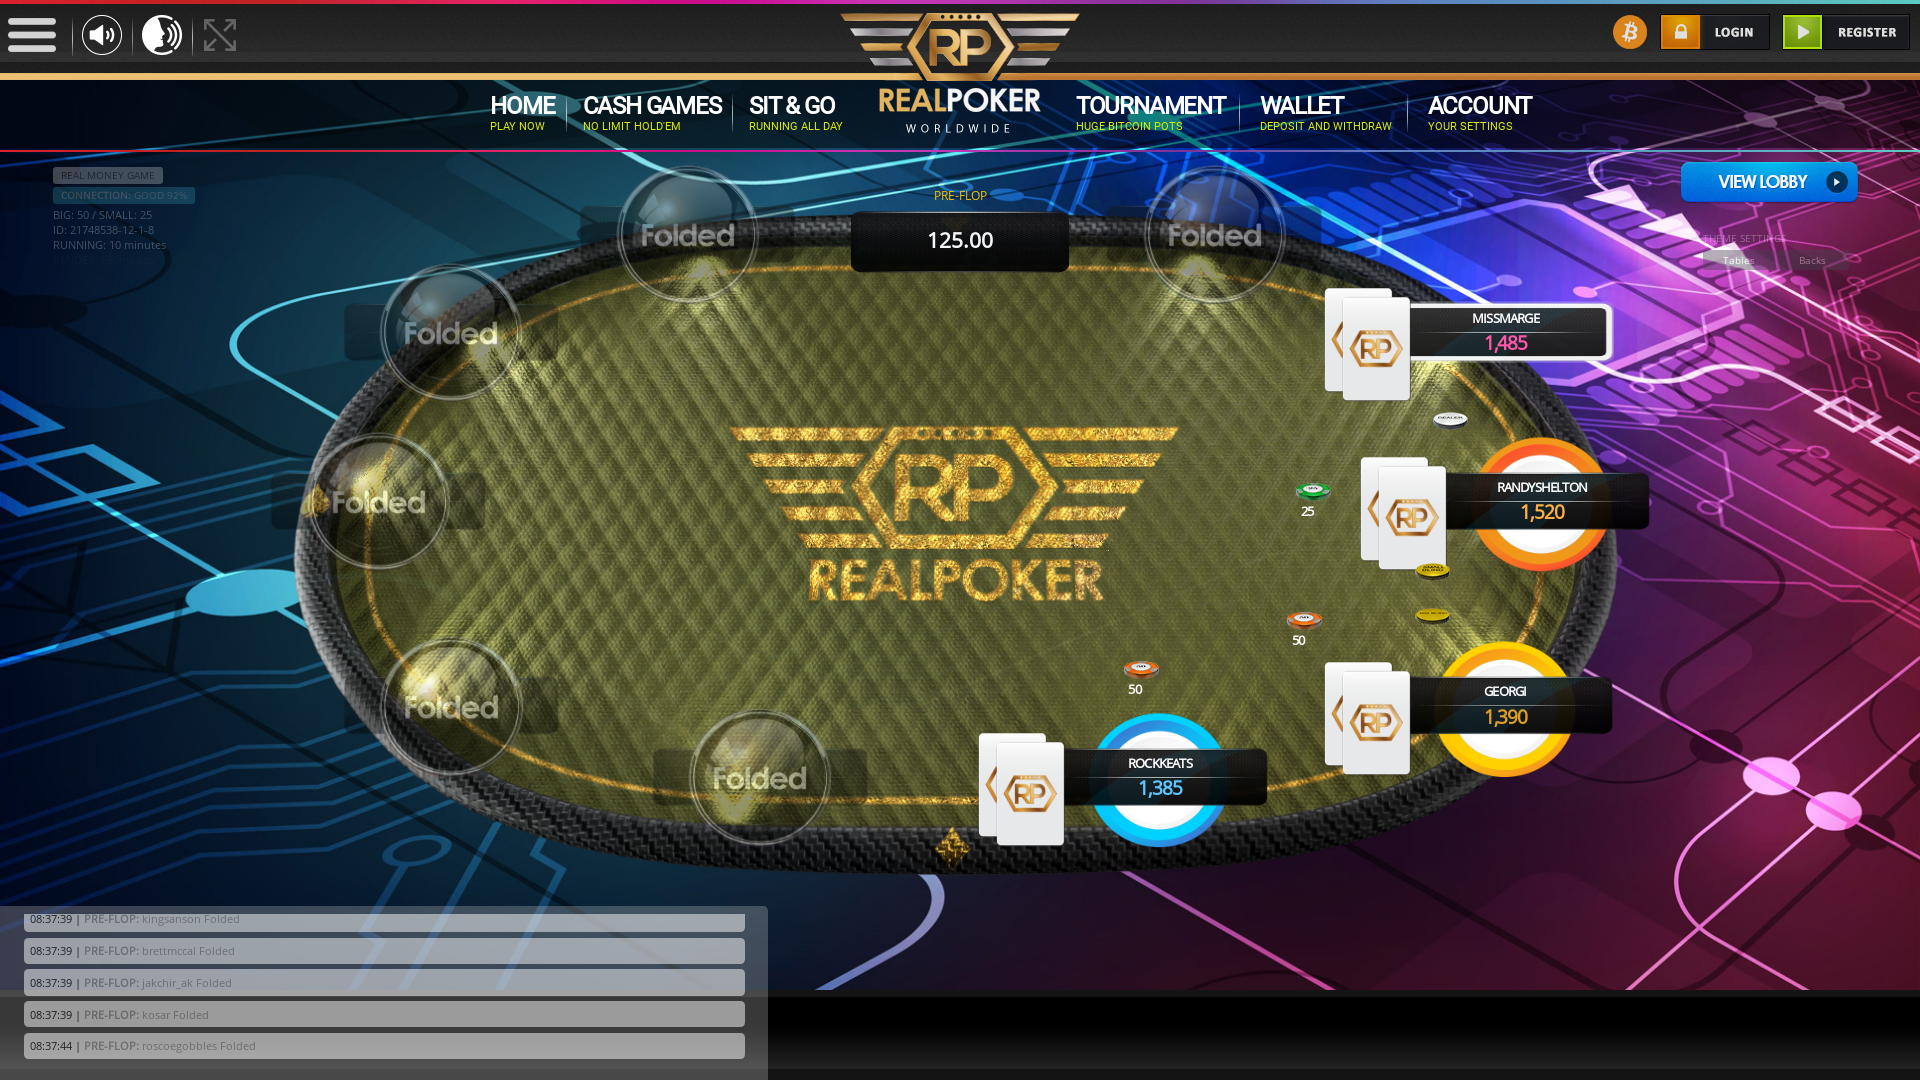 Colombia BTC Poker from August